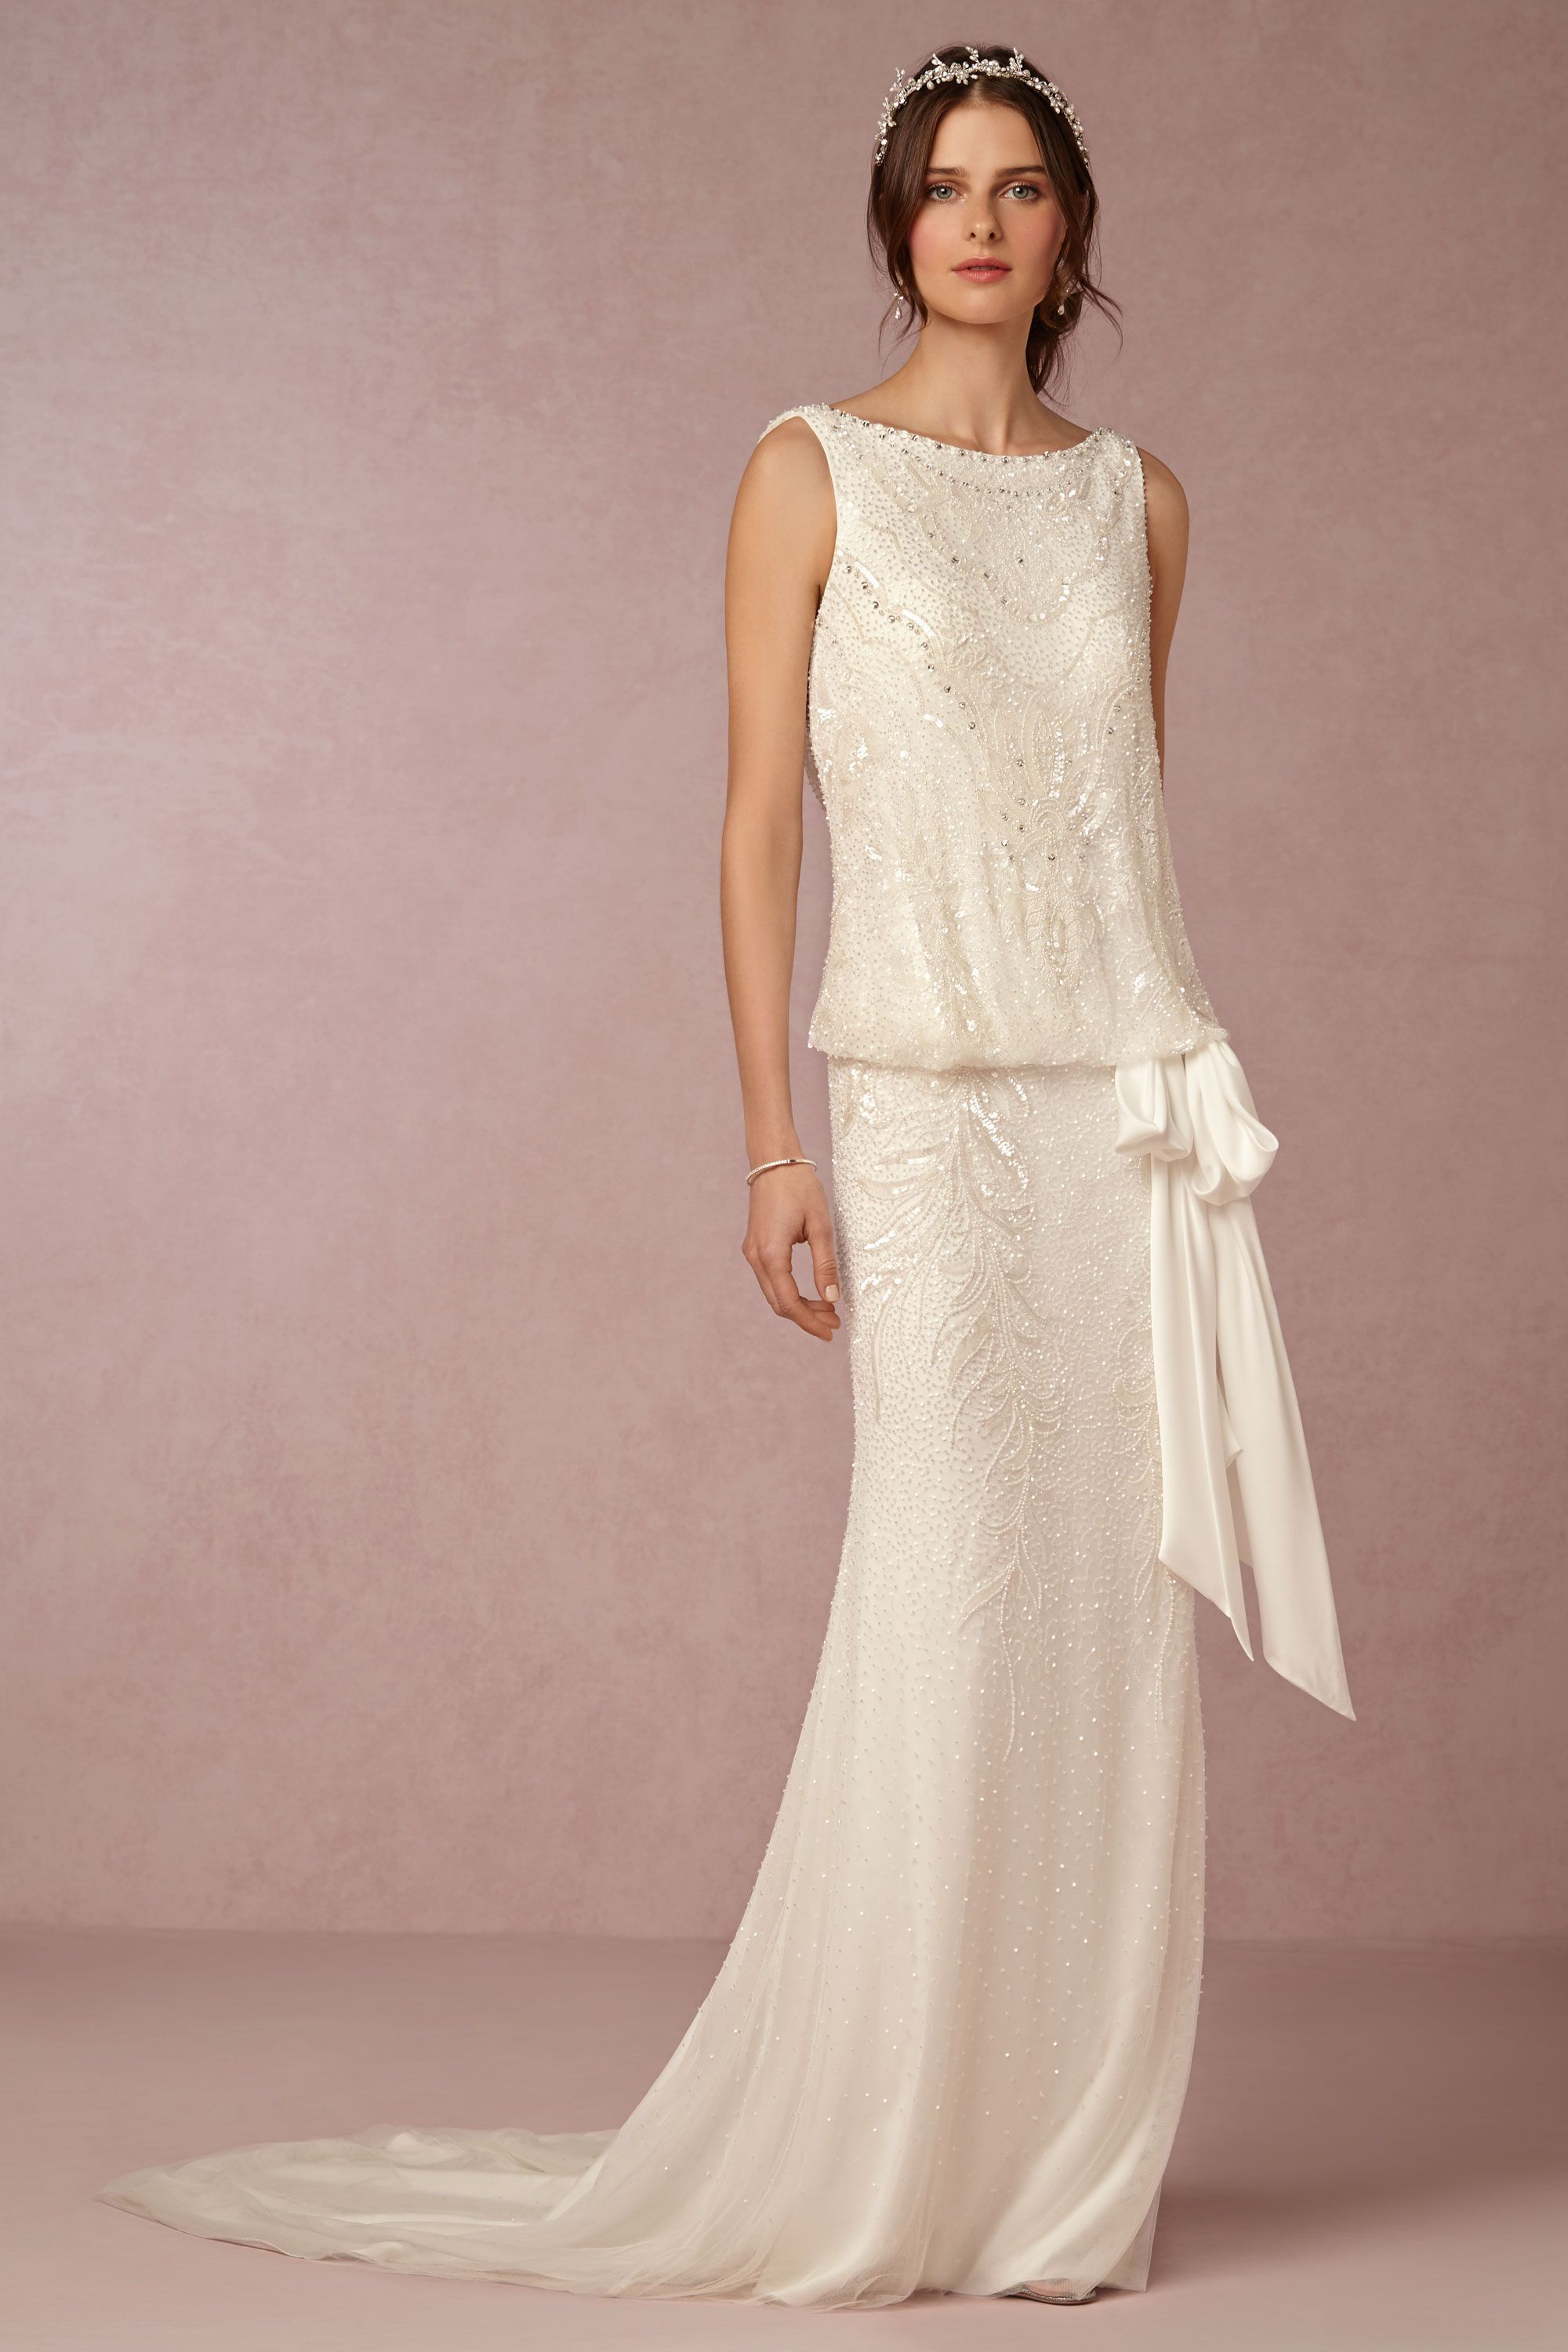 Arabella Gown from @BHLDN. I love the drop waist look (so classic ...